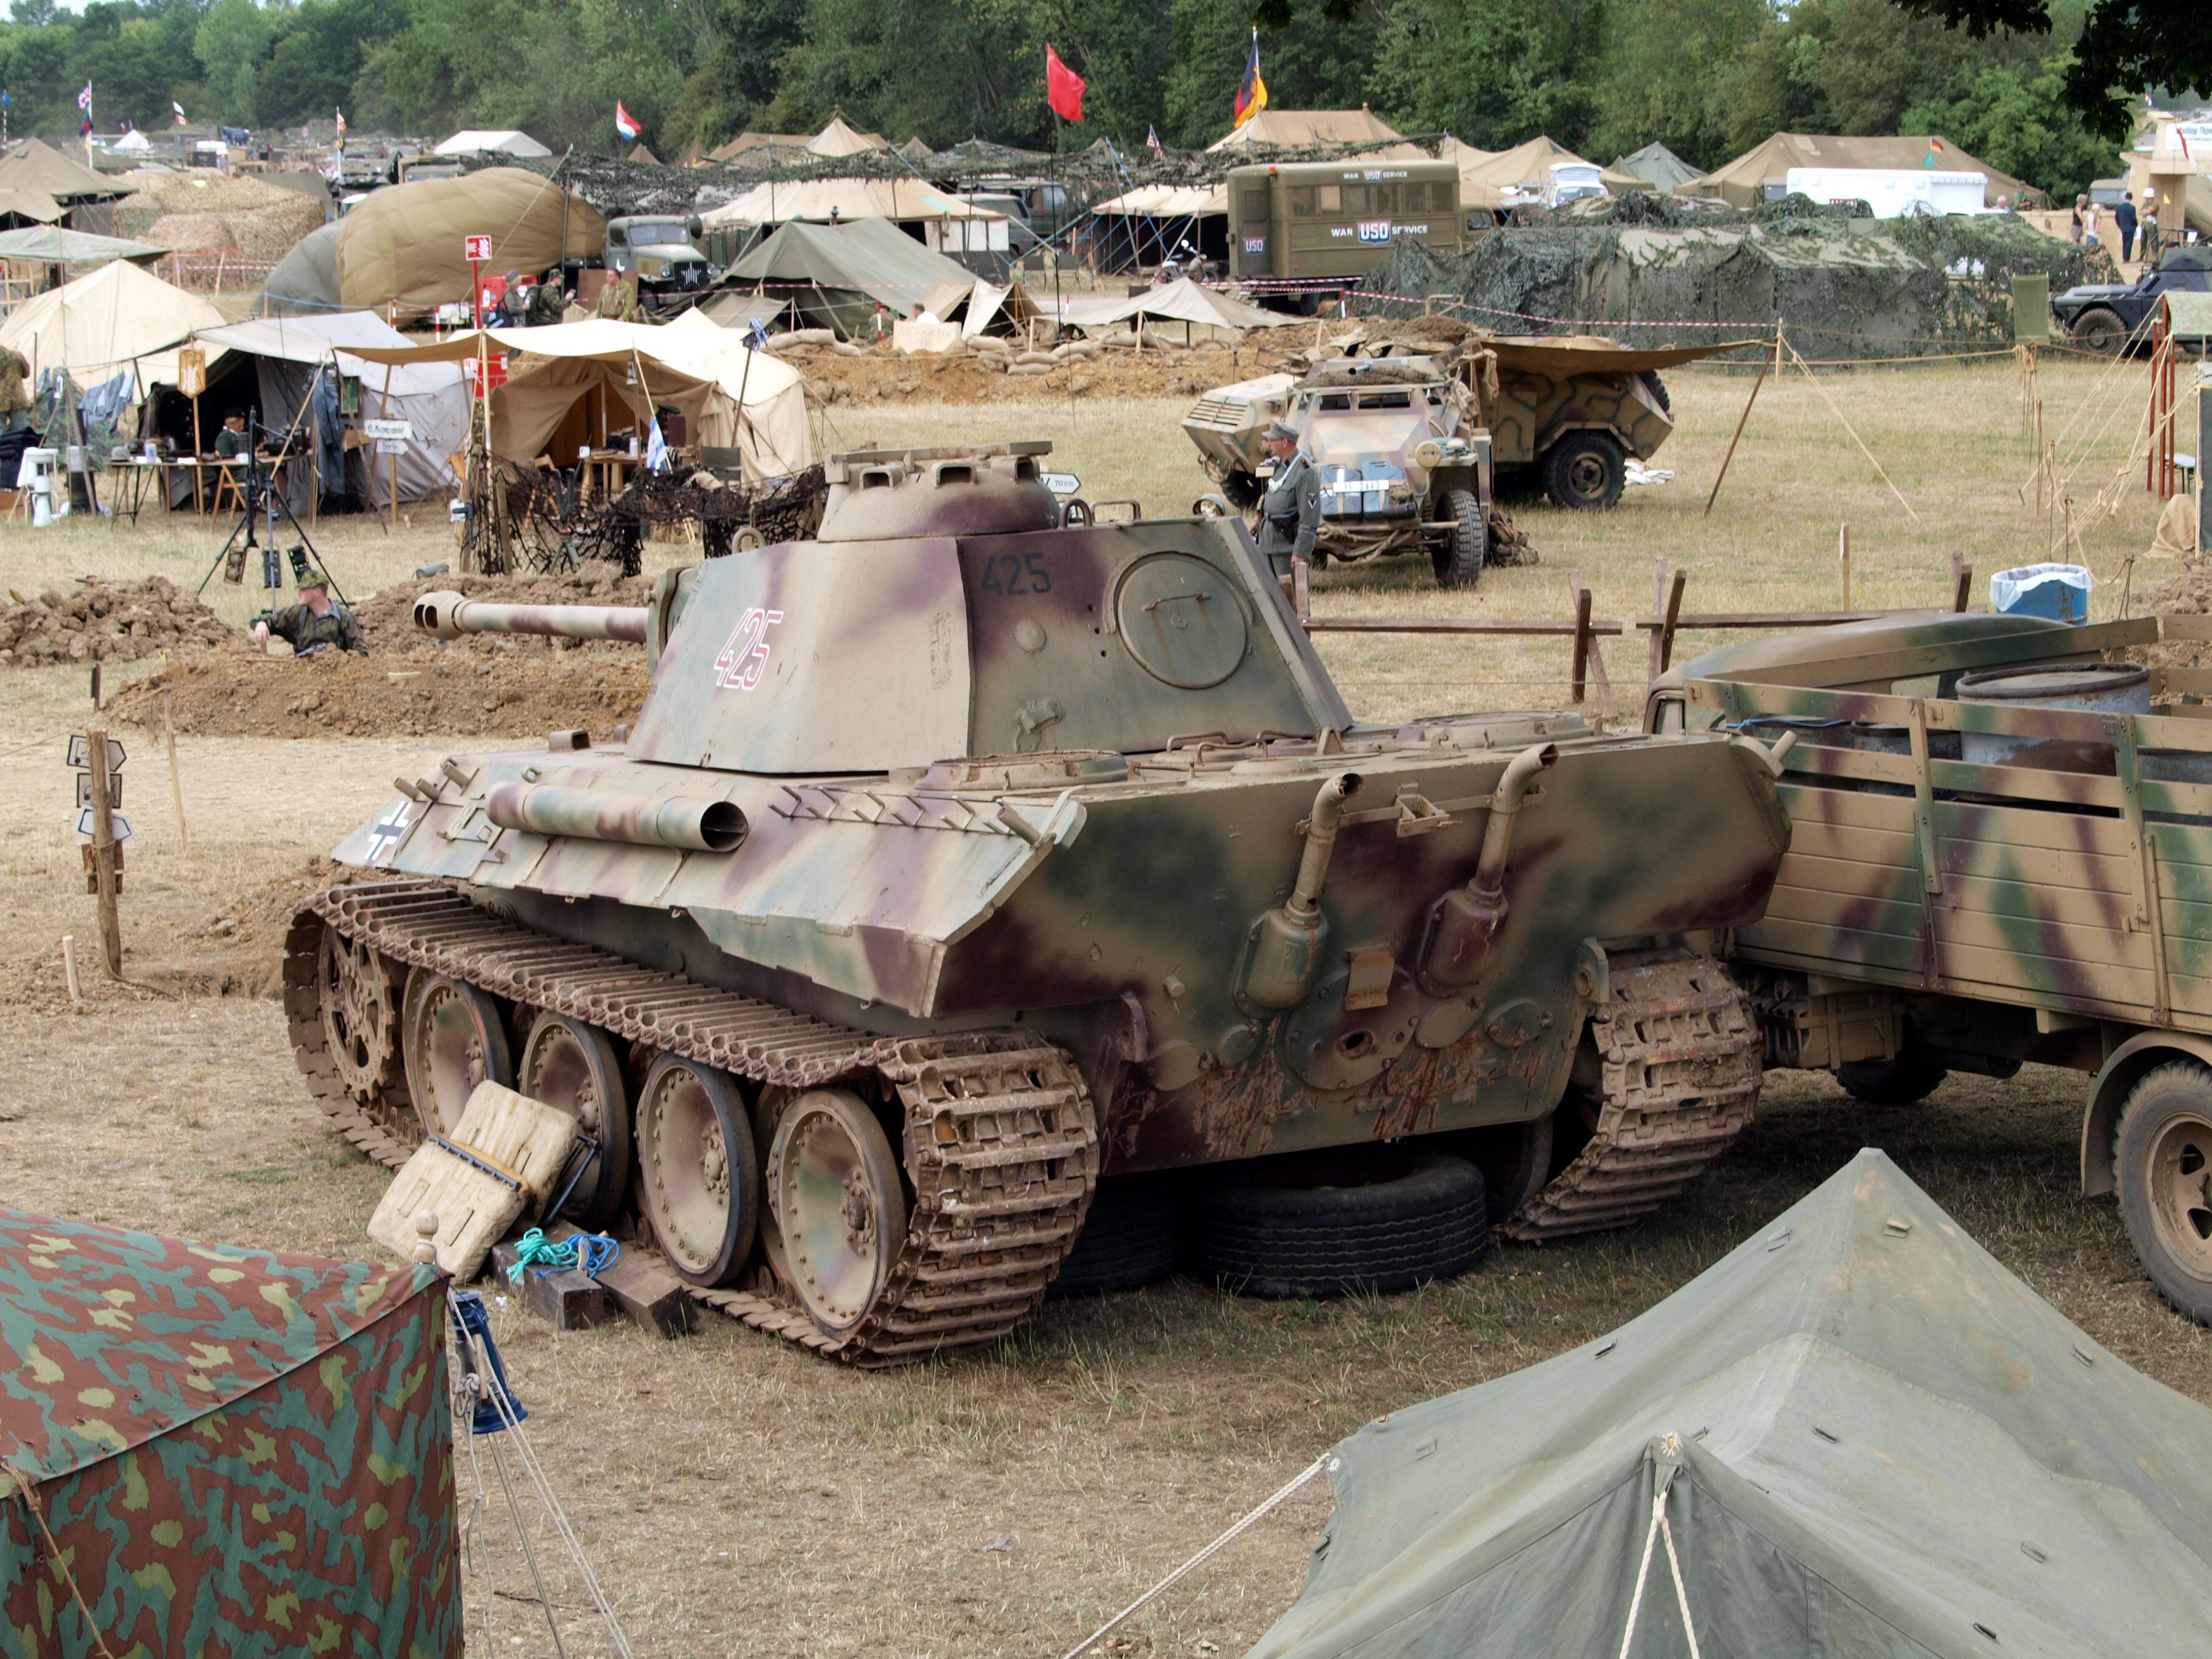 File:Panzer V, Panther pic-001.JPG - Wikimedia Commons